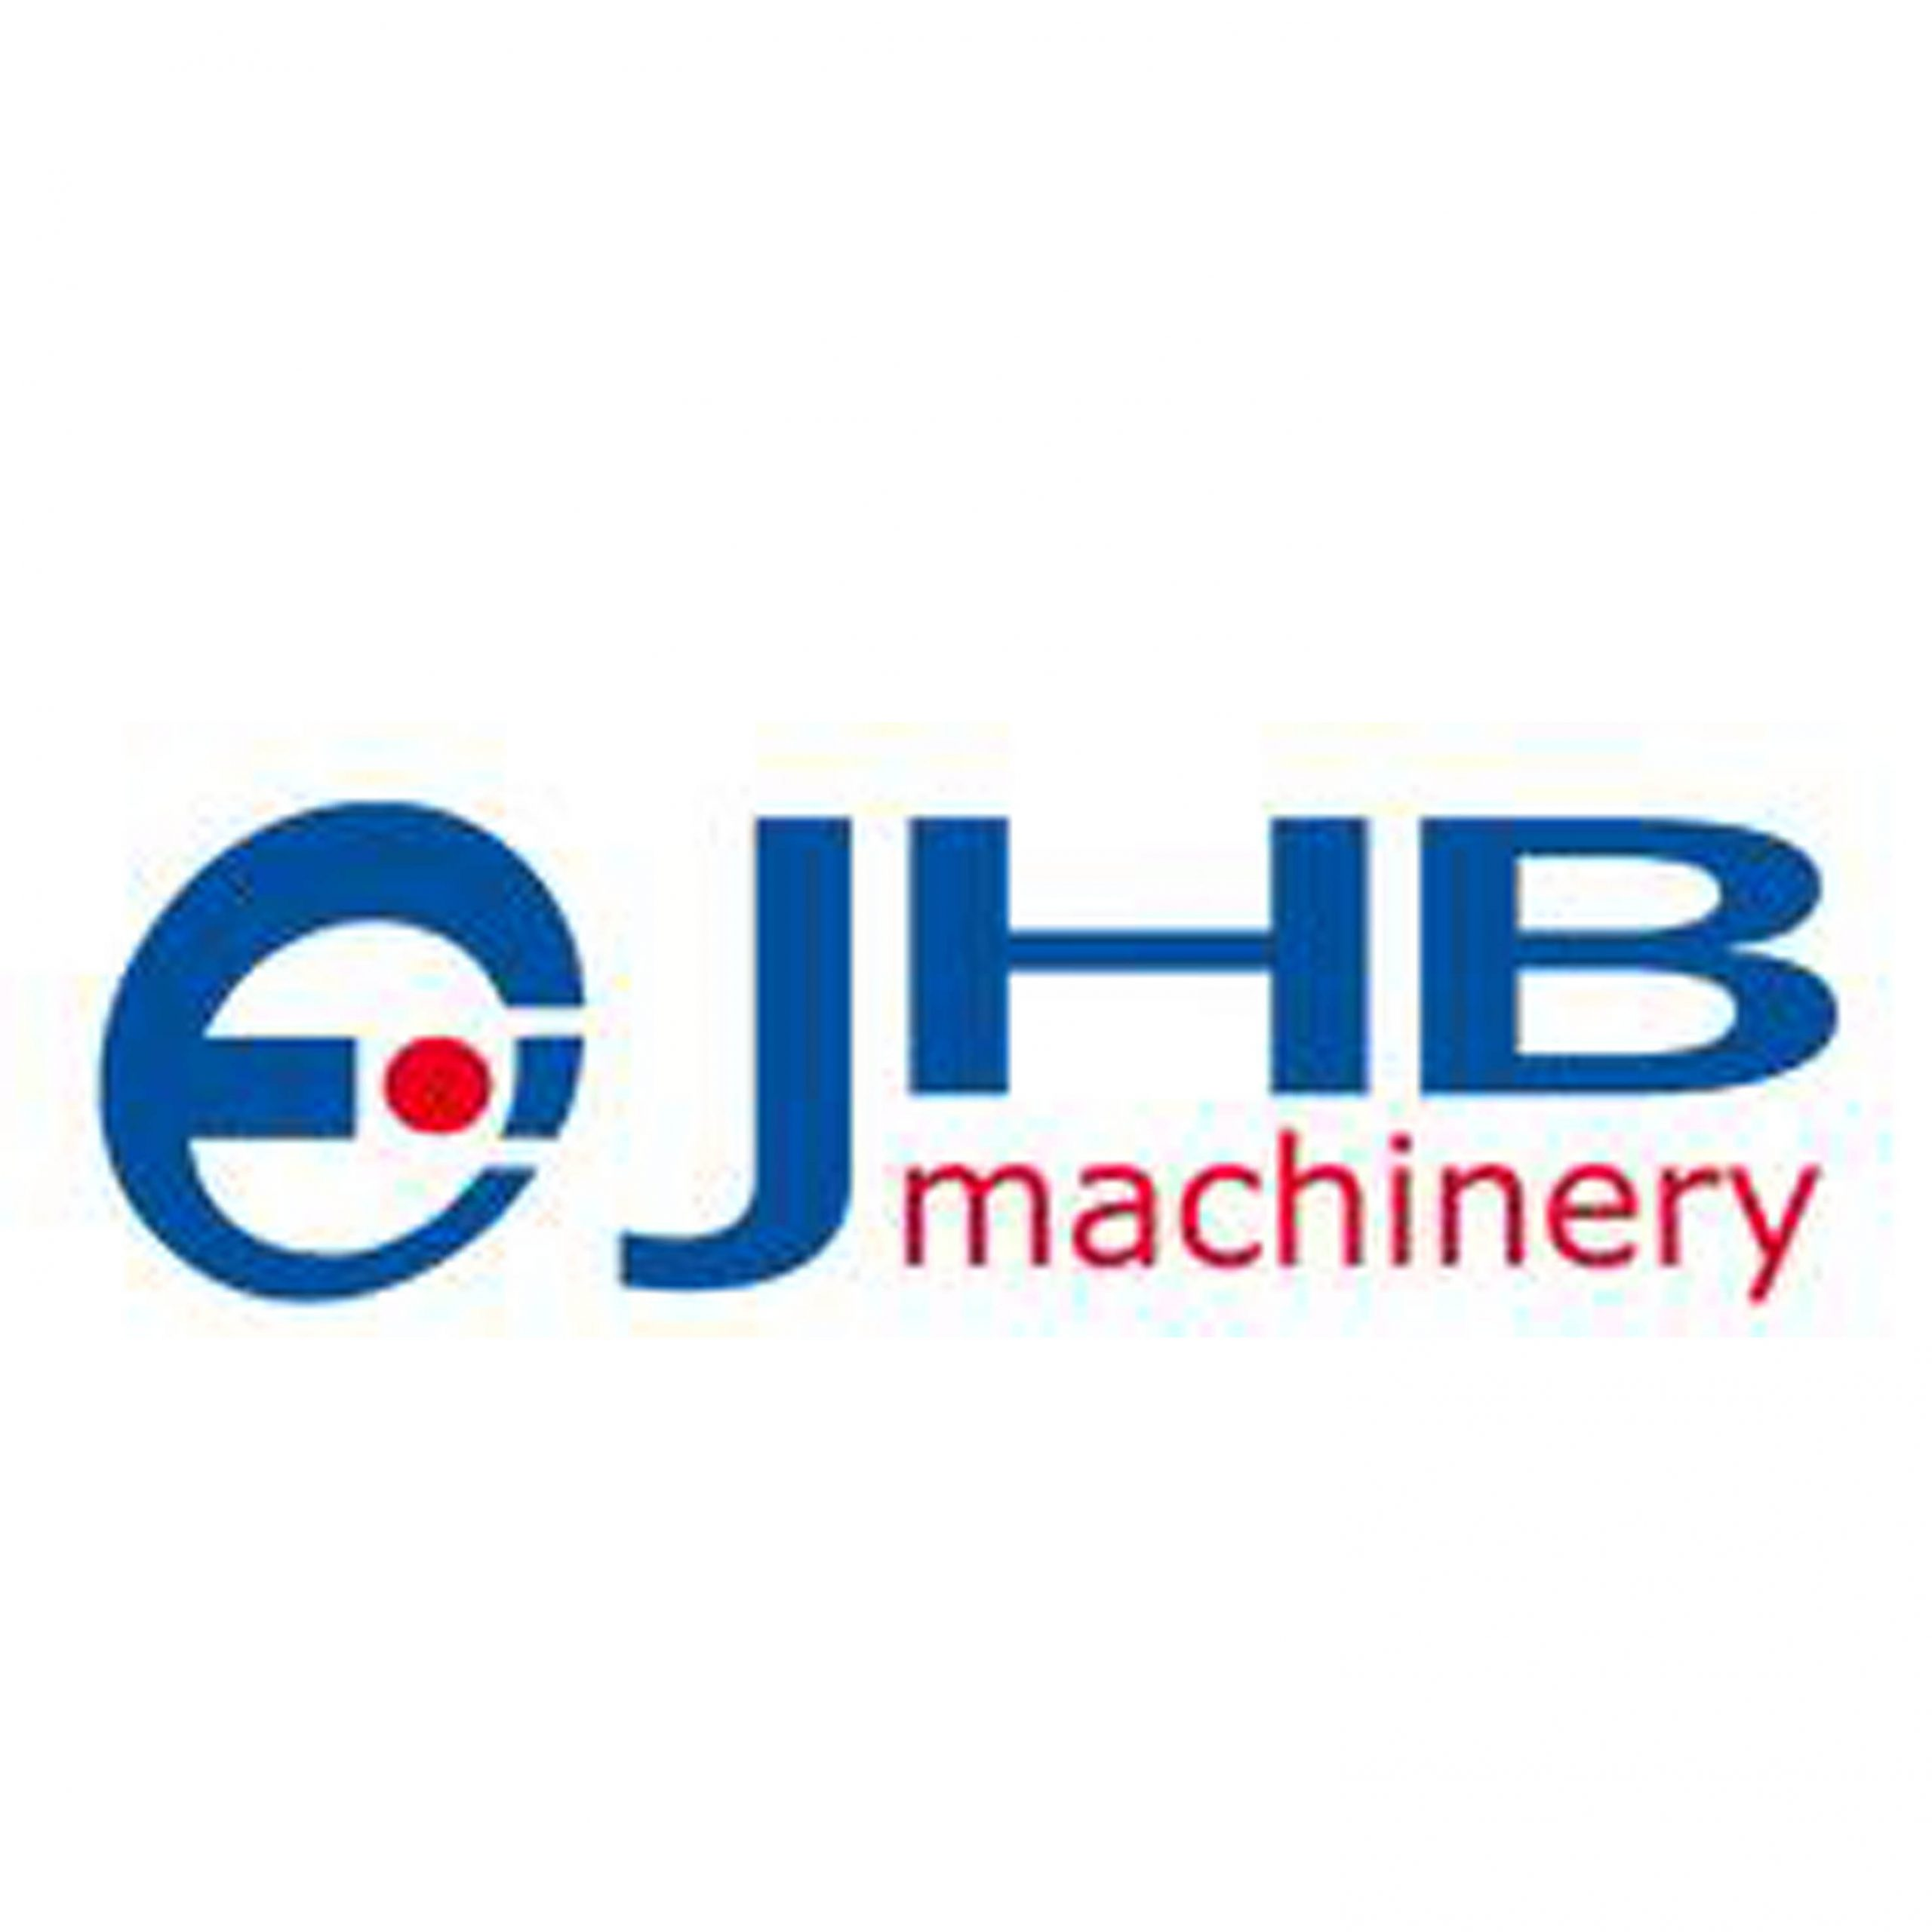 JHM Machinery Taiwan - Young TC partner